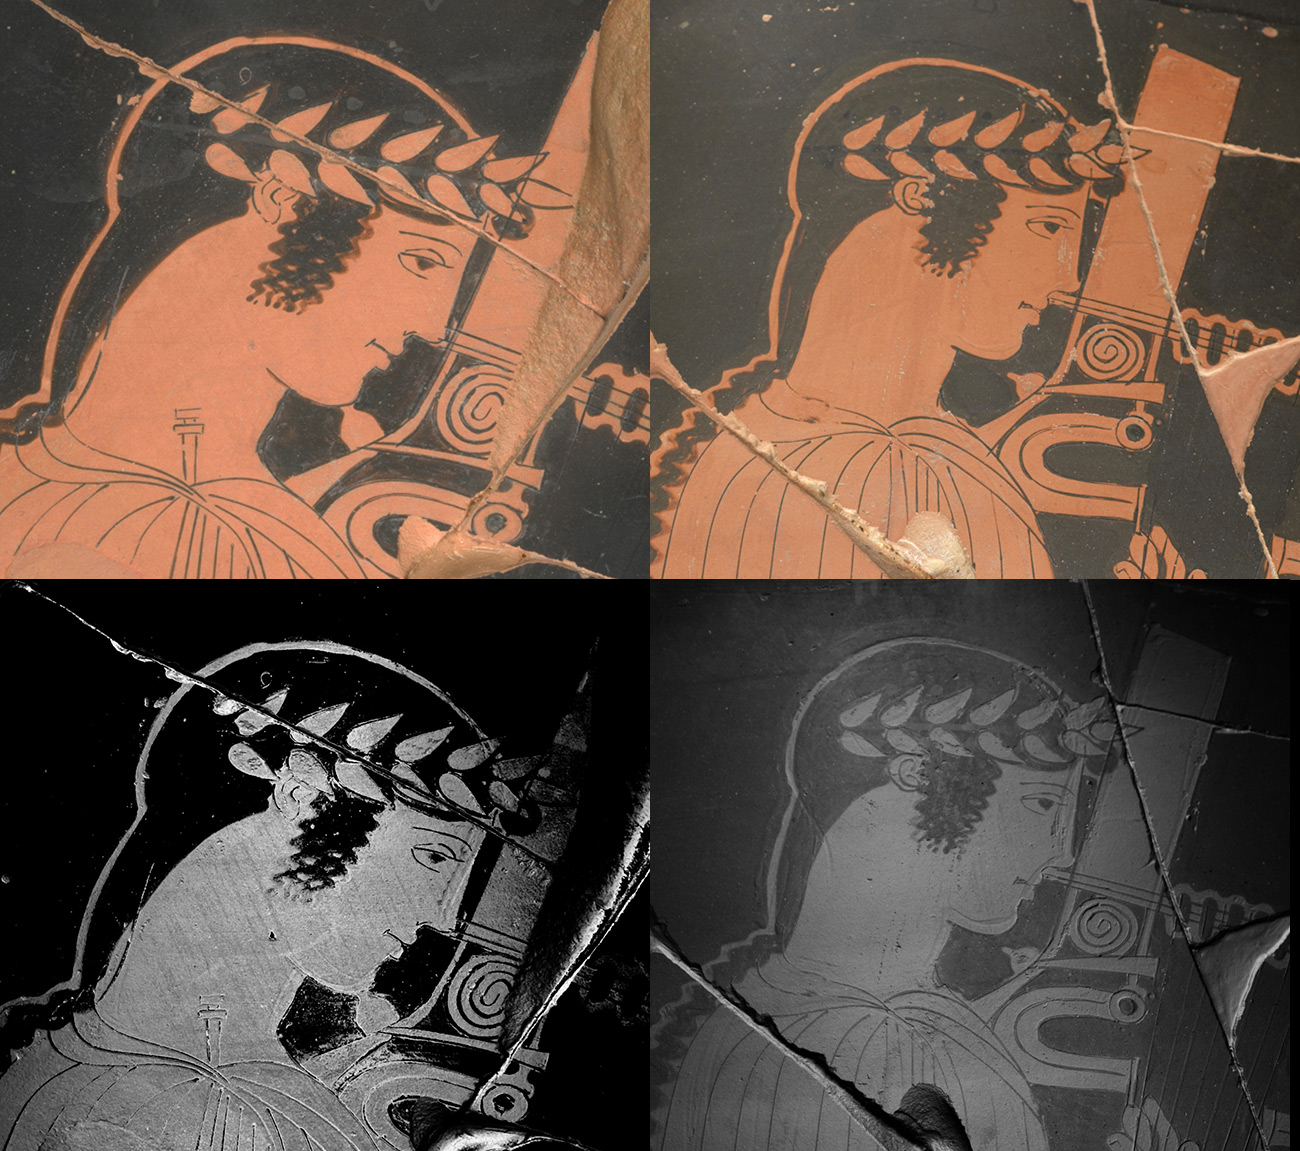 Grid of four images showing two vase paintings of Apollo, one under natural light and one under black and white technical imaging